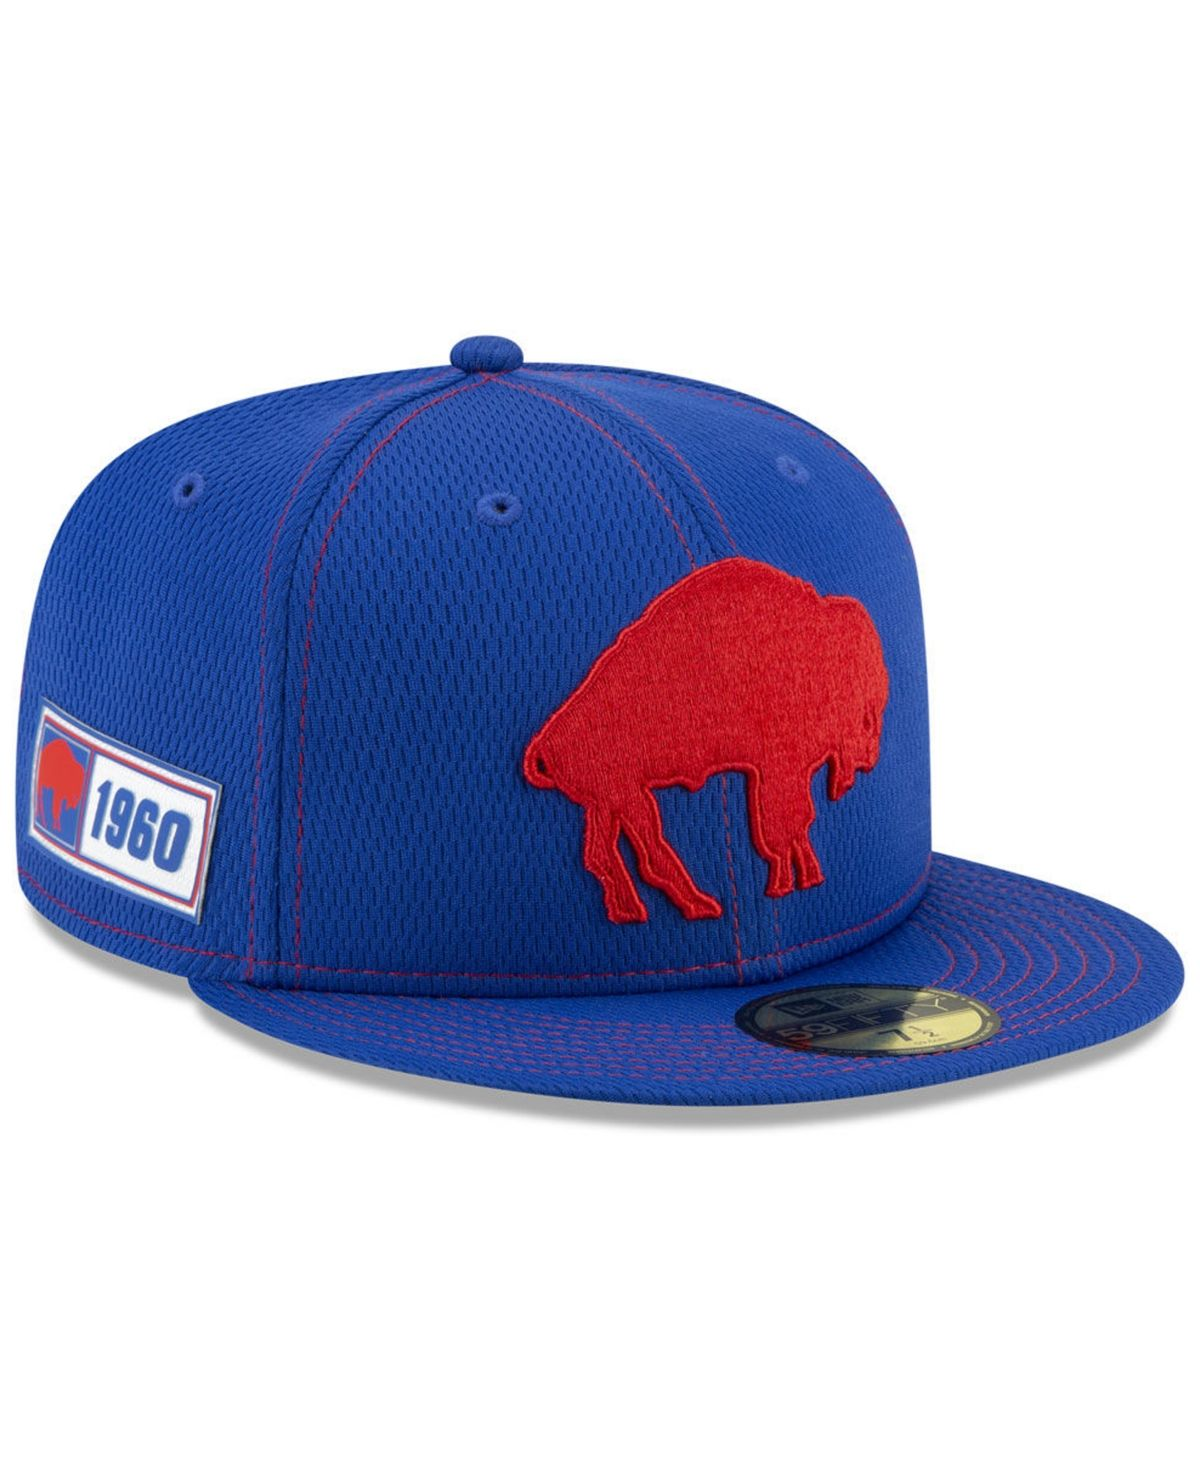 NEW ERA 59FIFTY CAP ON FIELD NFL SIDELINE CHOICE OF TEAMS